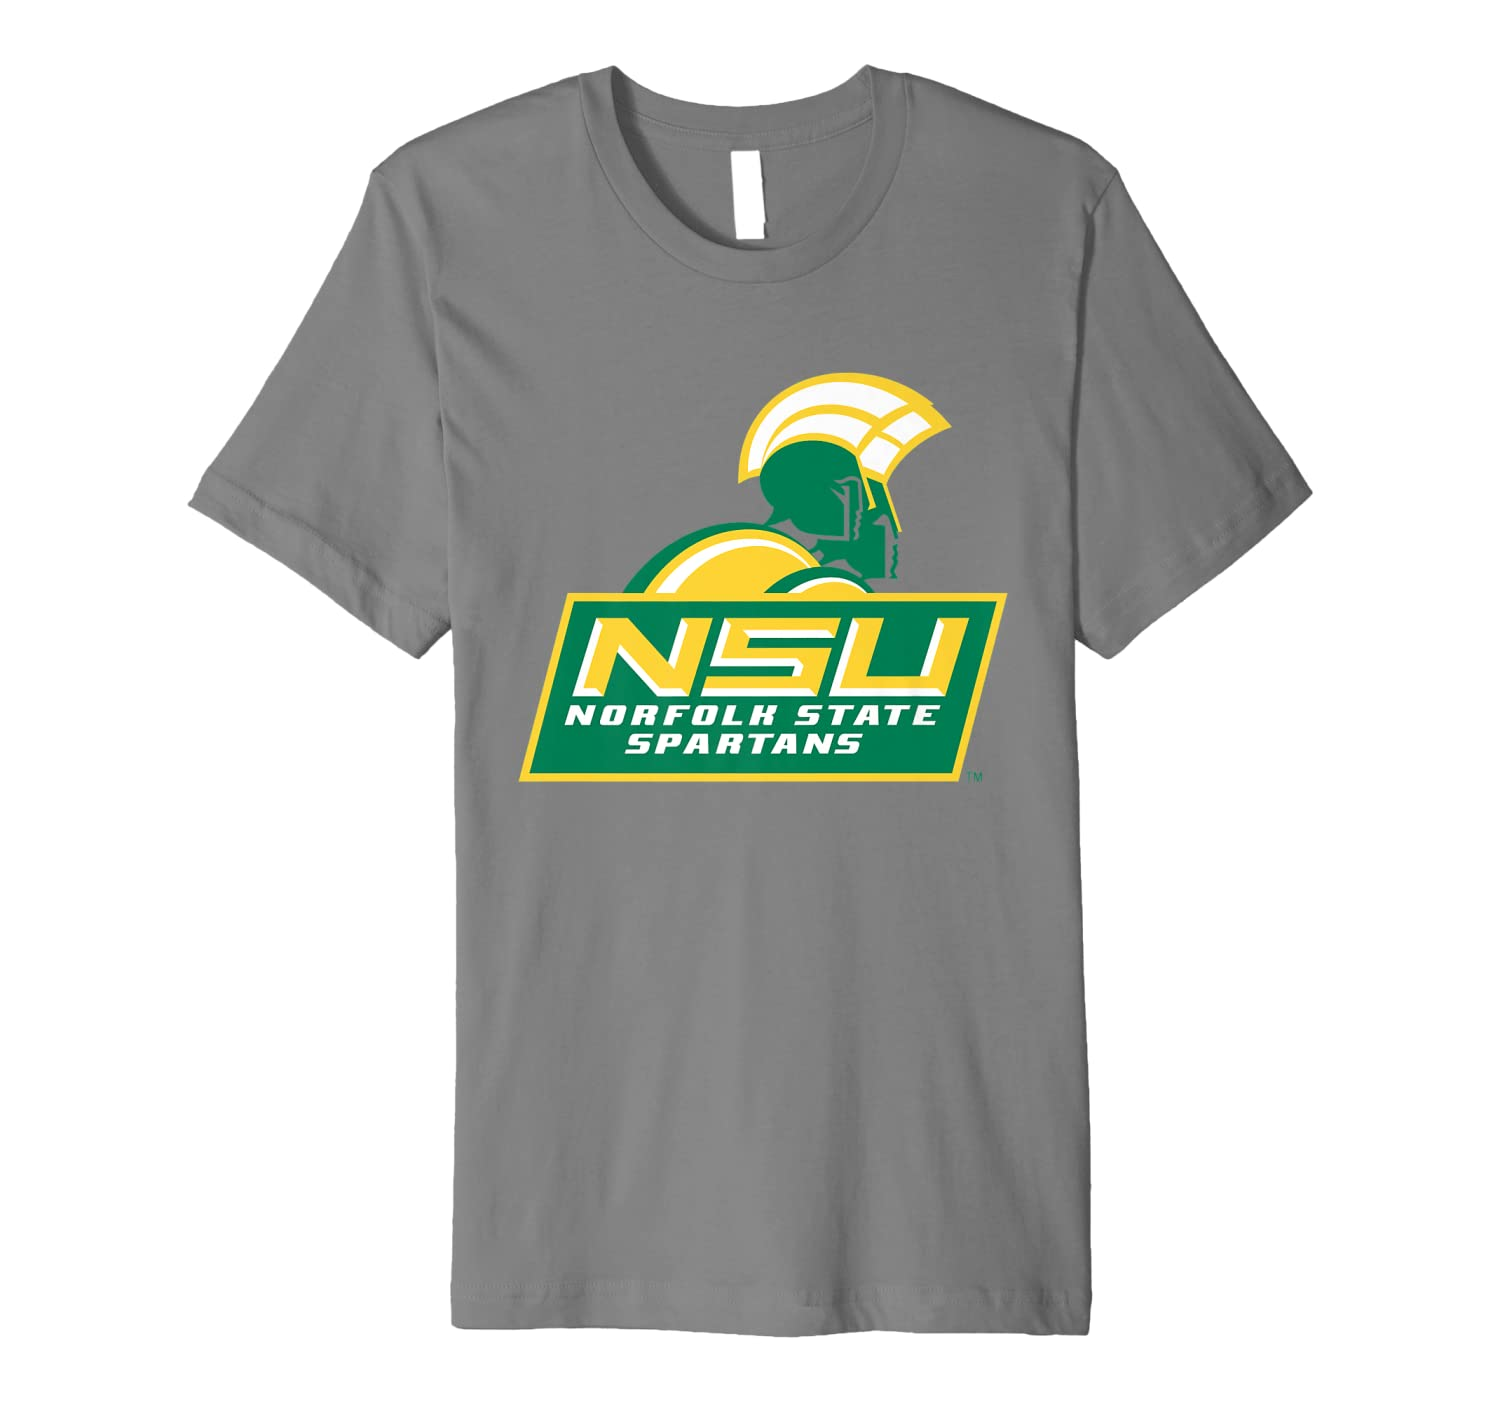 competitive price a48ae 53781 Amazon.com: Norfolk State University NSU Spartans NCAA T ...